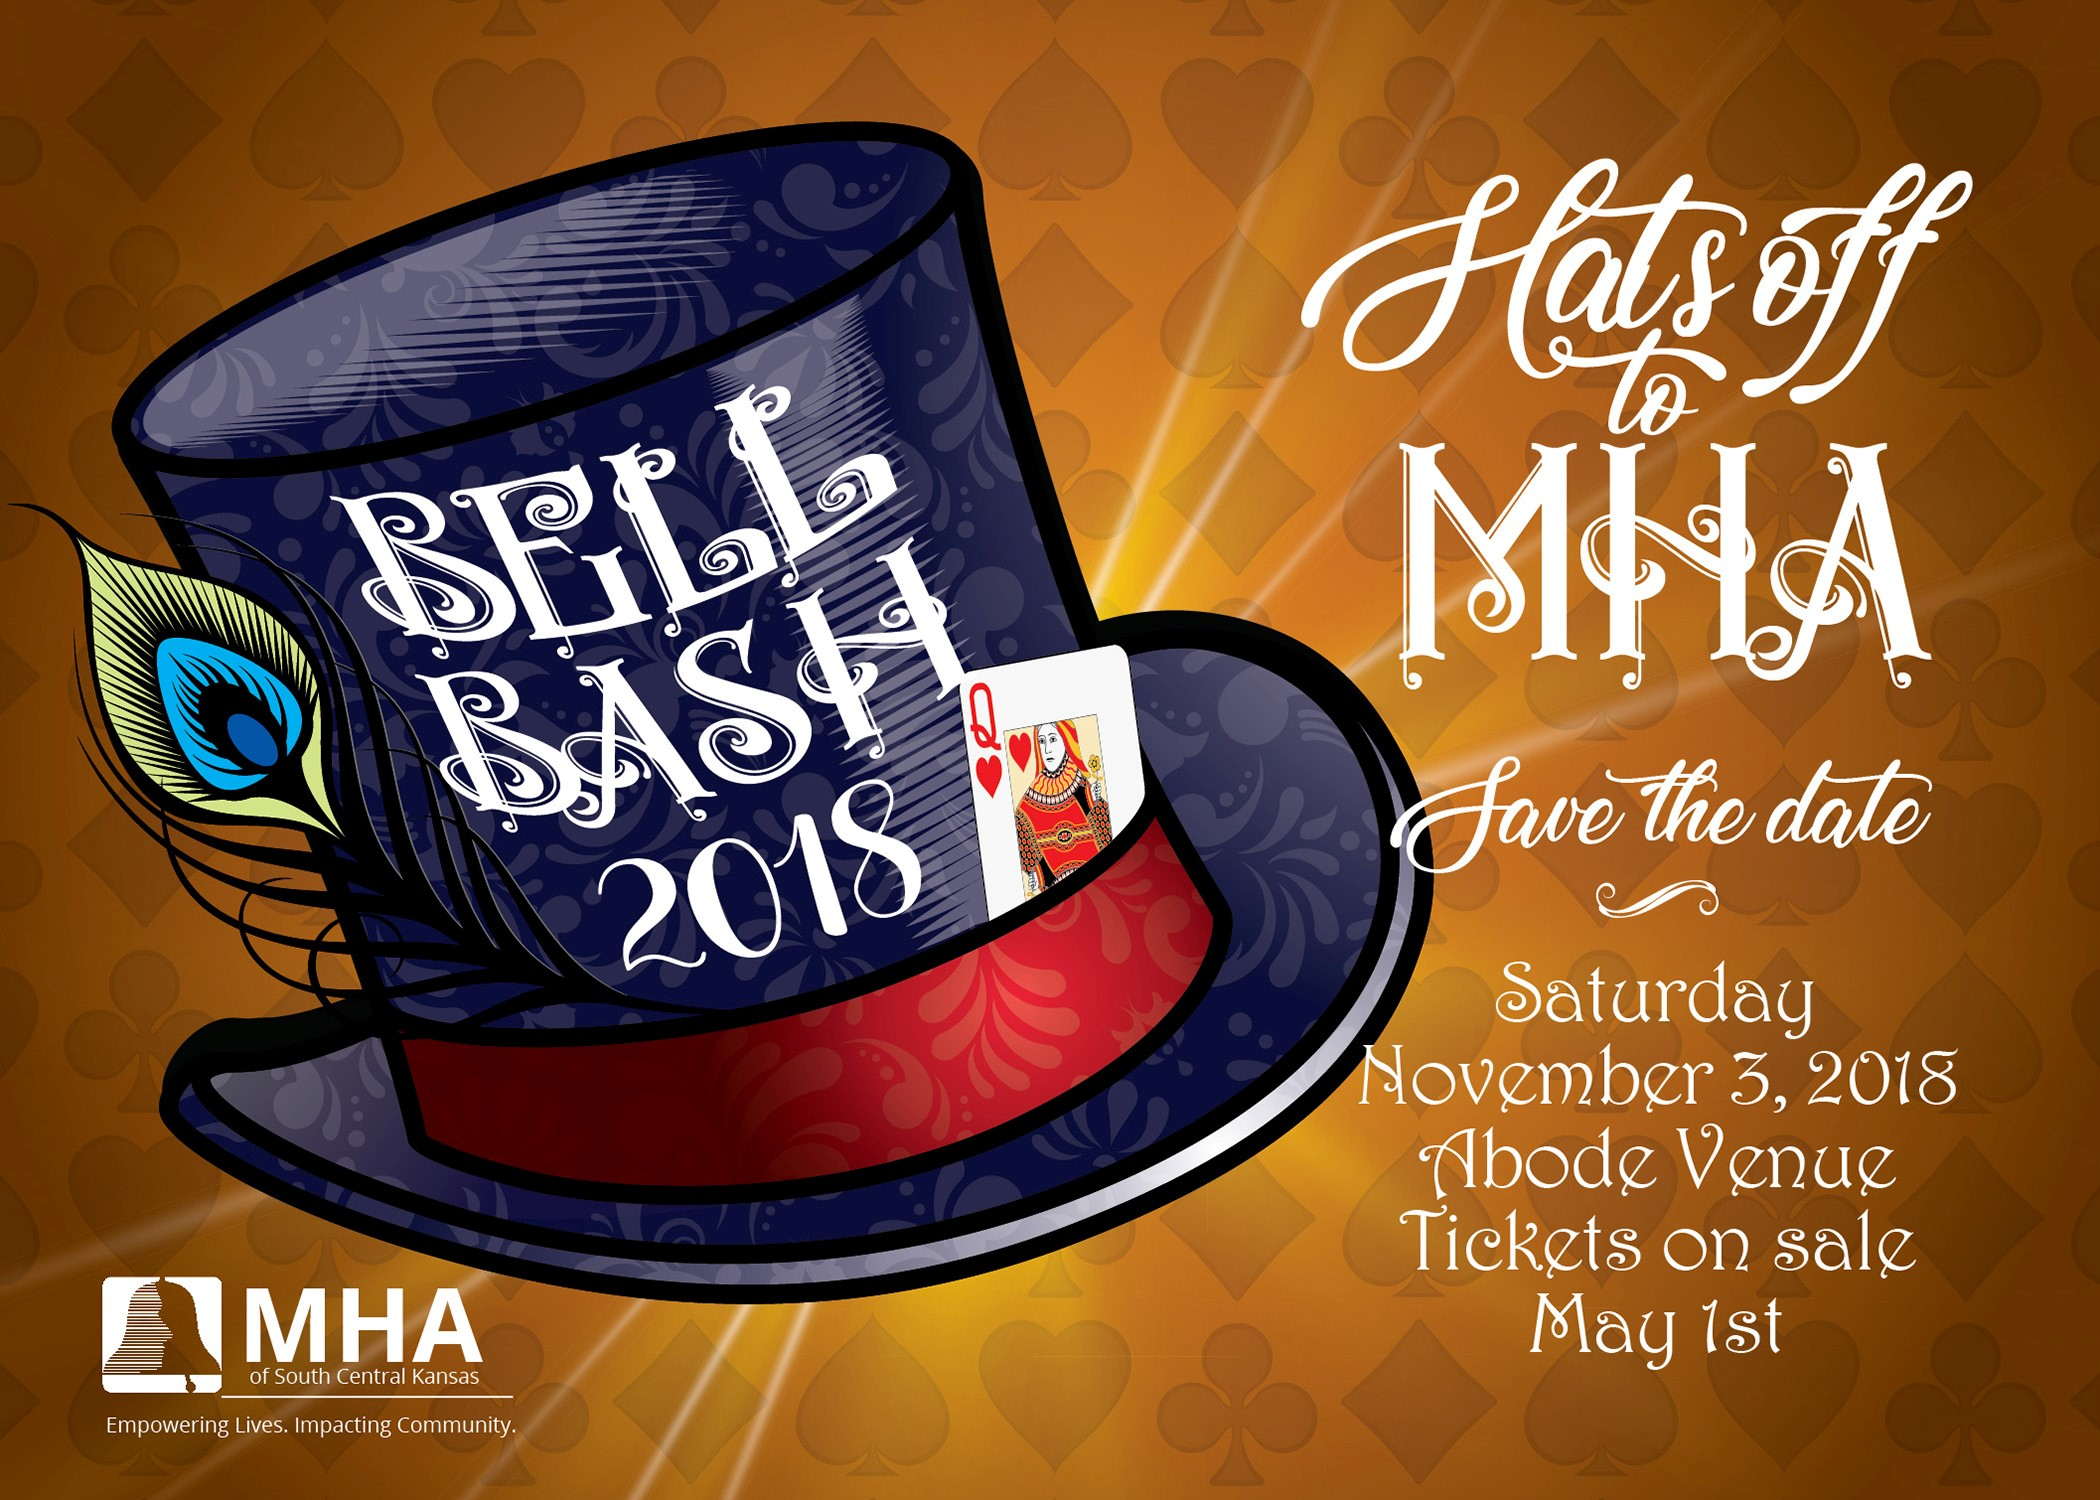 Bell Bash 2018: Hats Off to MHA